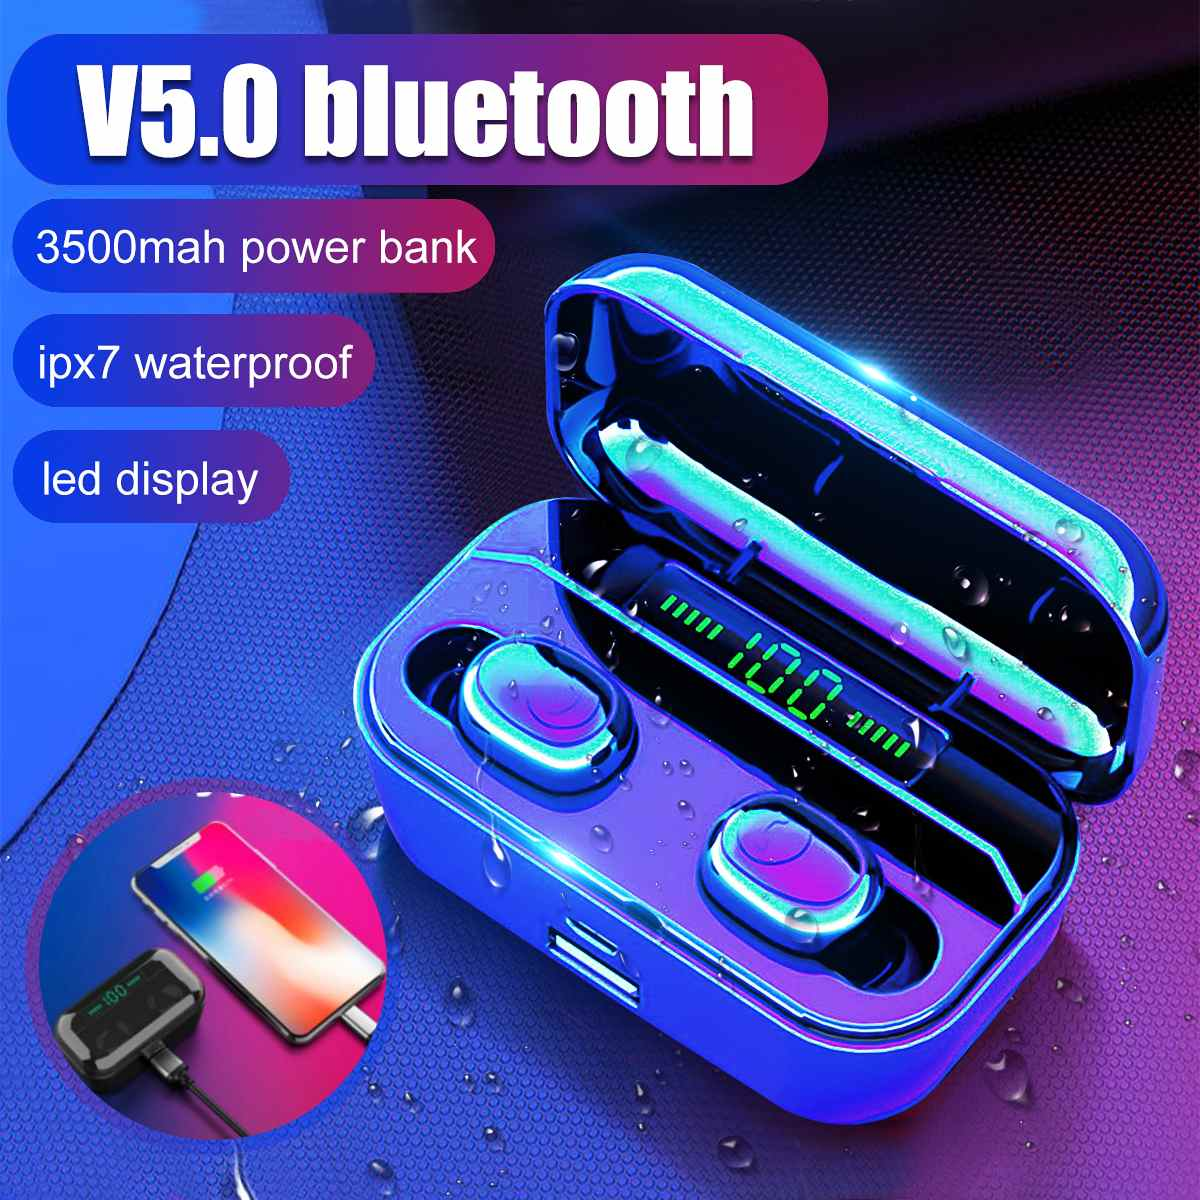 Bluetooth 5.0 Earphones G6s LED Display TWS Wireless Stereo Earbud IPX7 Waterproof Sports Headset With 2200/3500mAh Charging Box